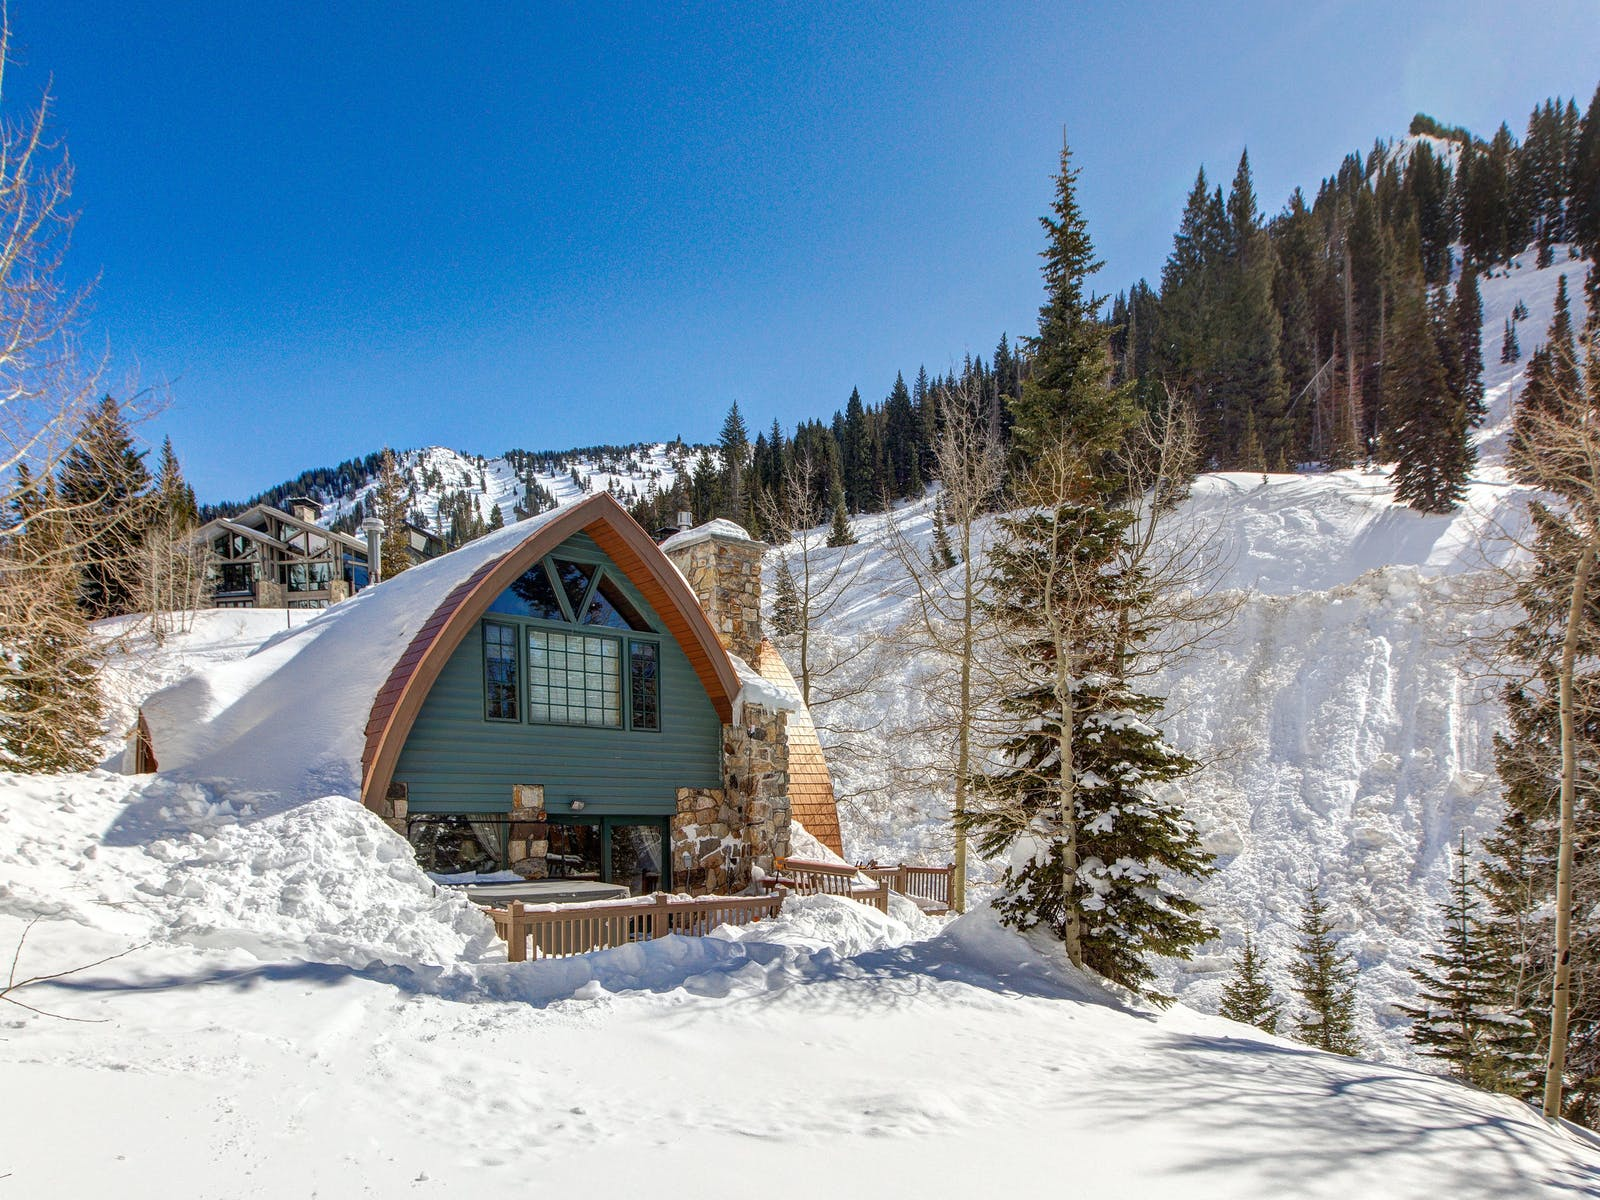 A green chalet rental covered in snow on a mountain side in Alta, UT.